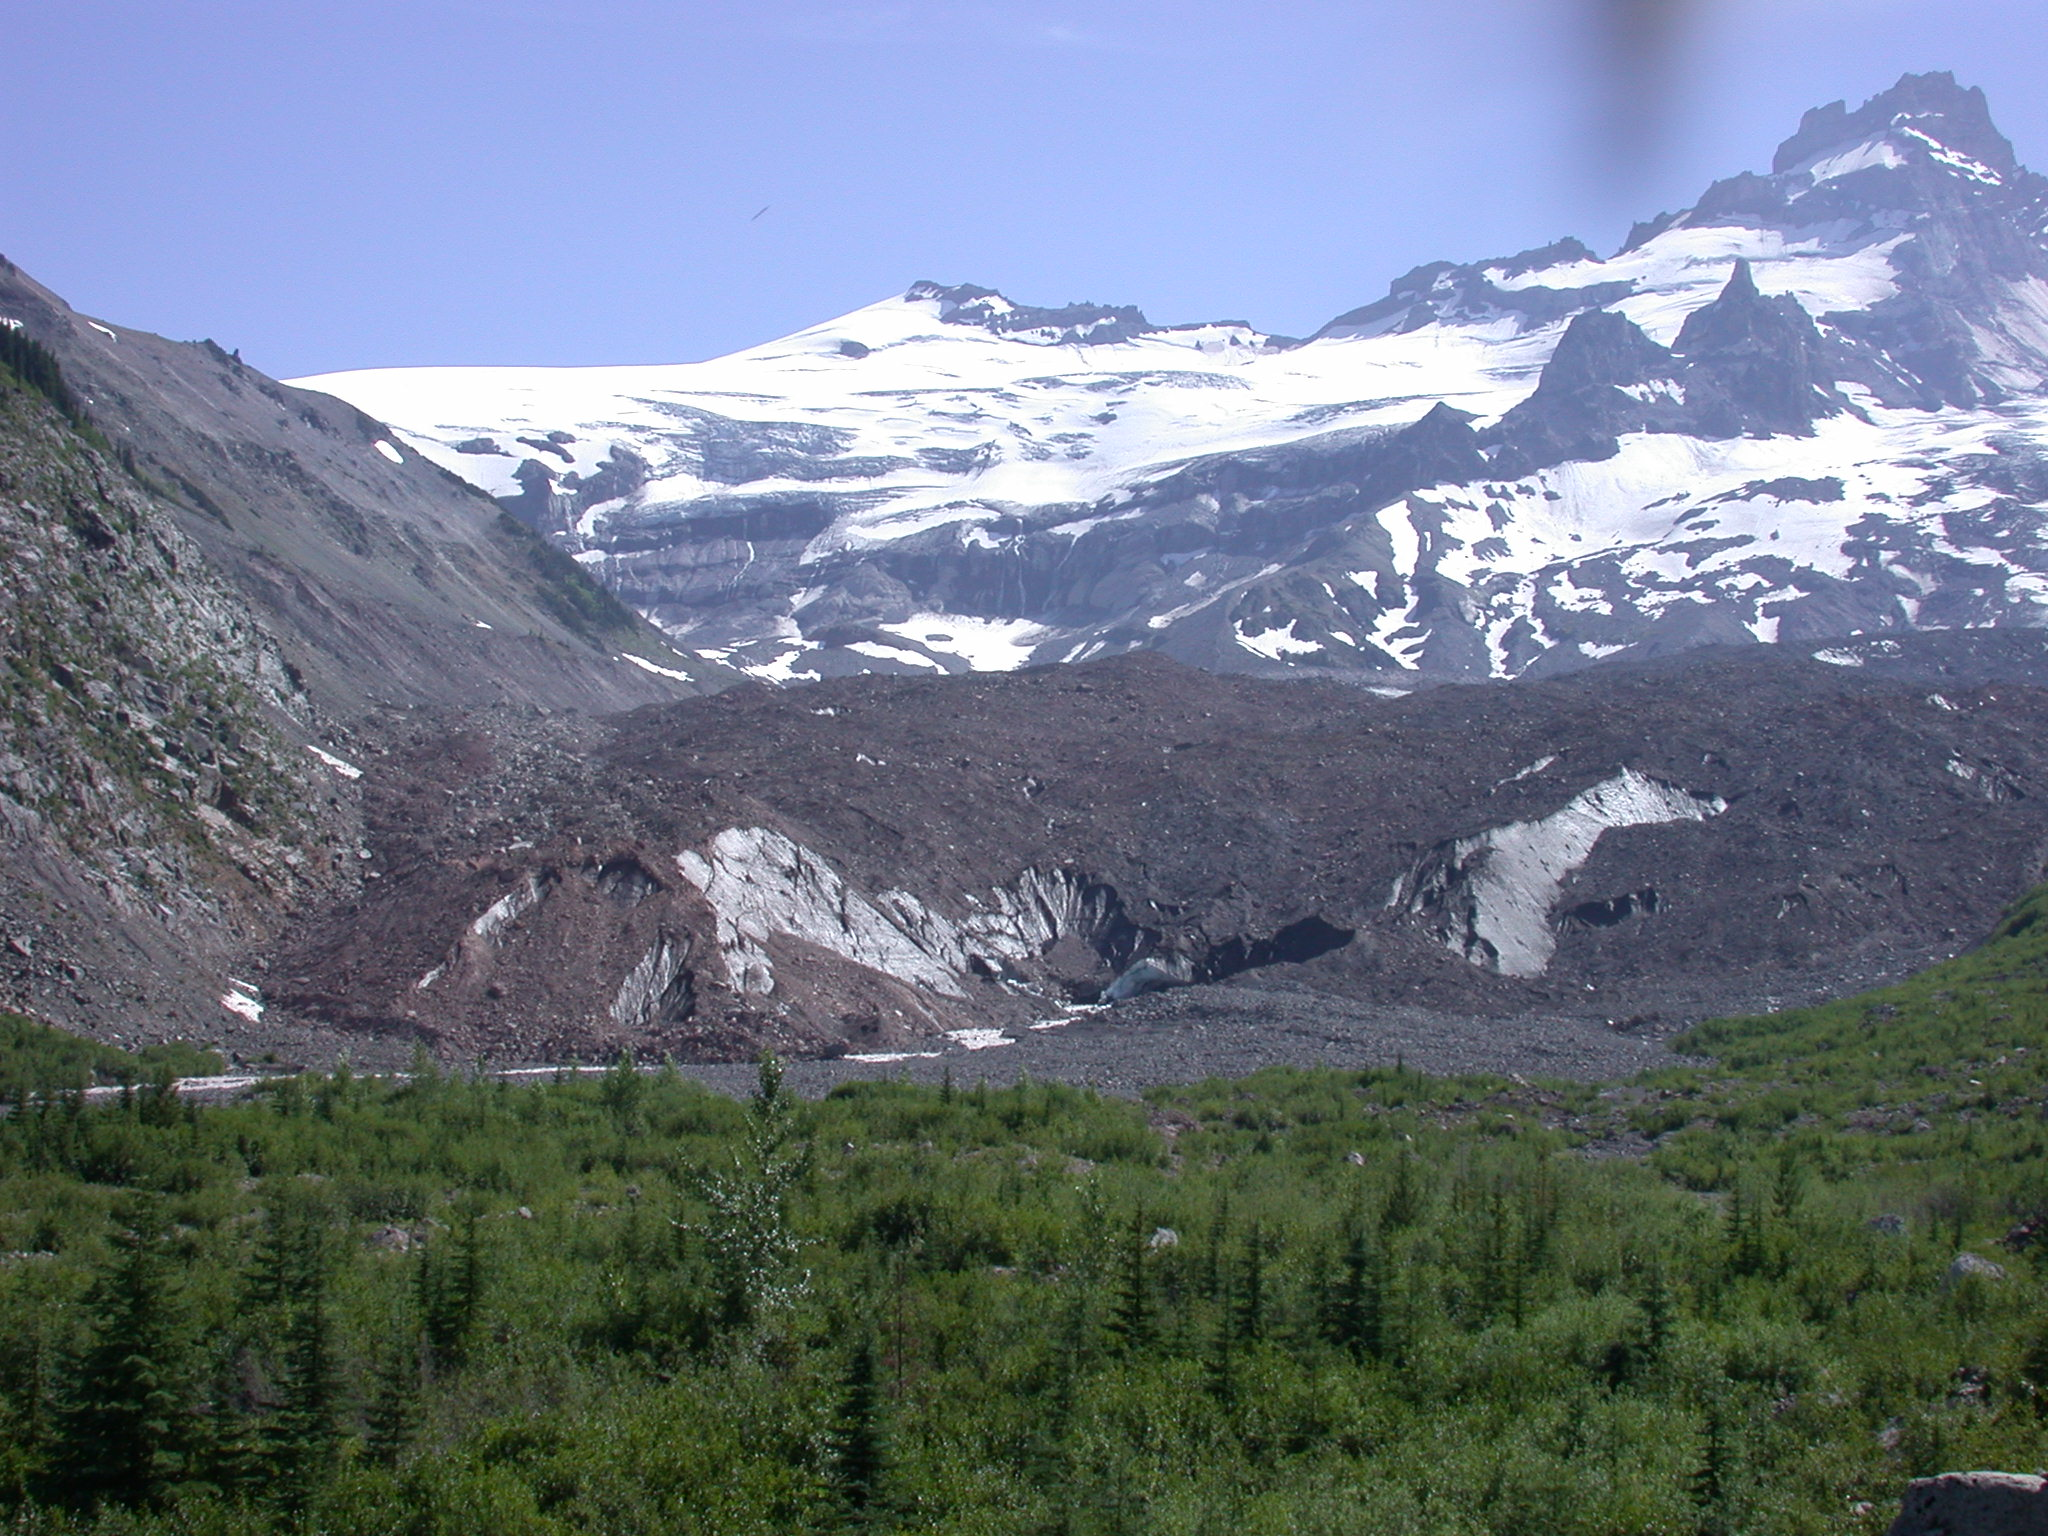 View of Glacier on Mount Rainier